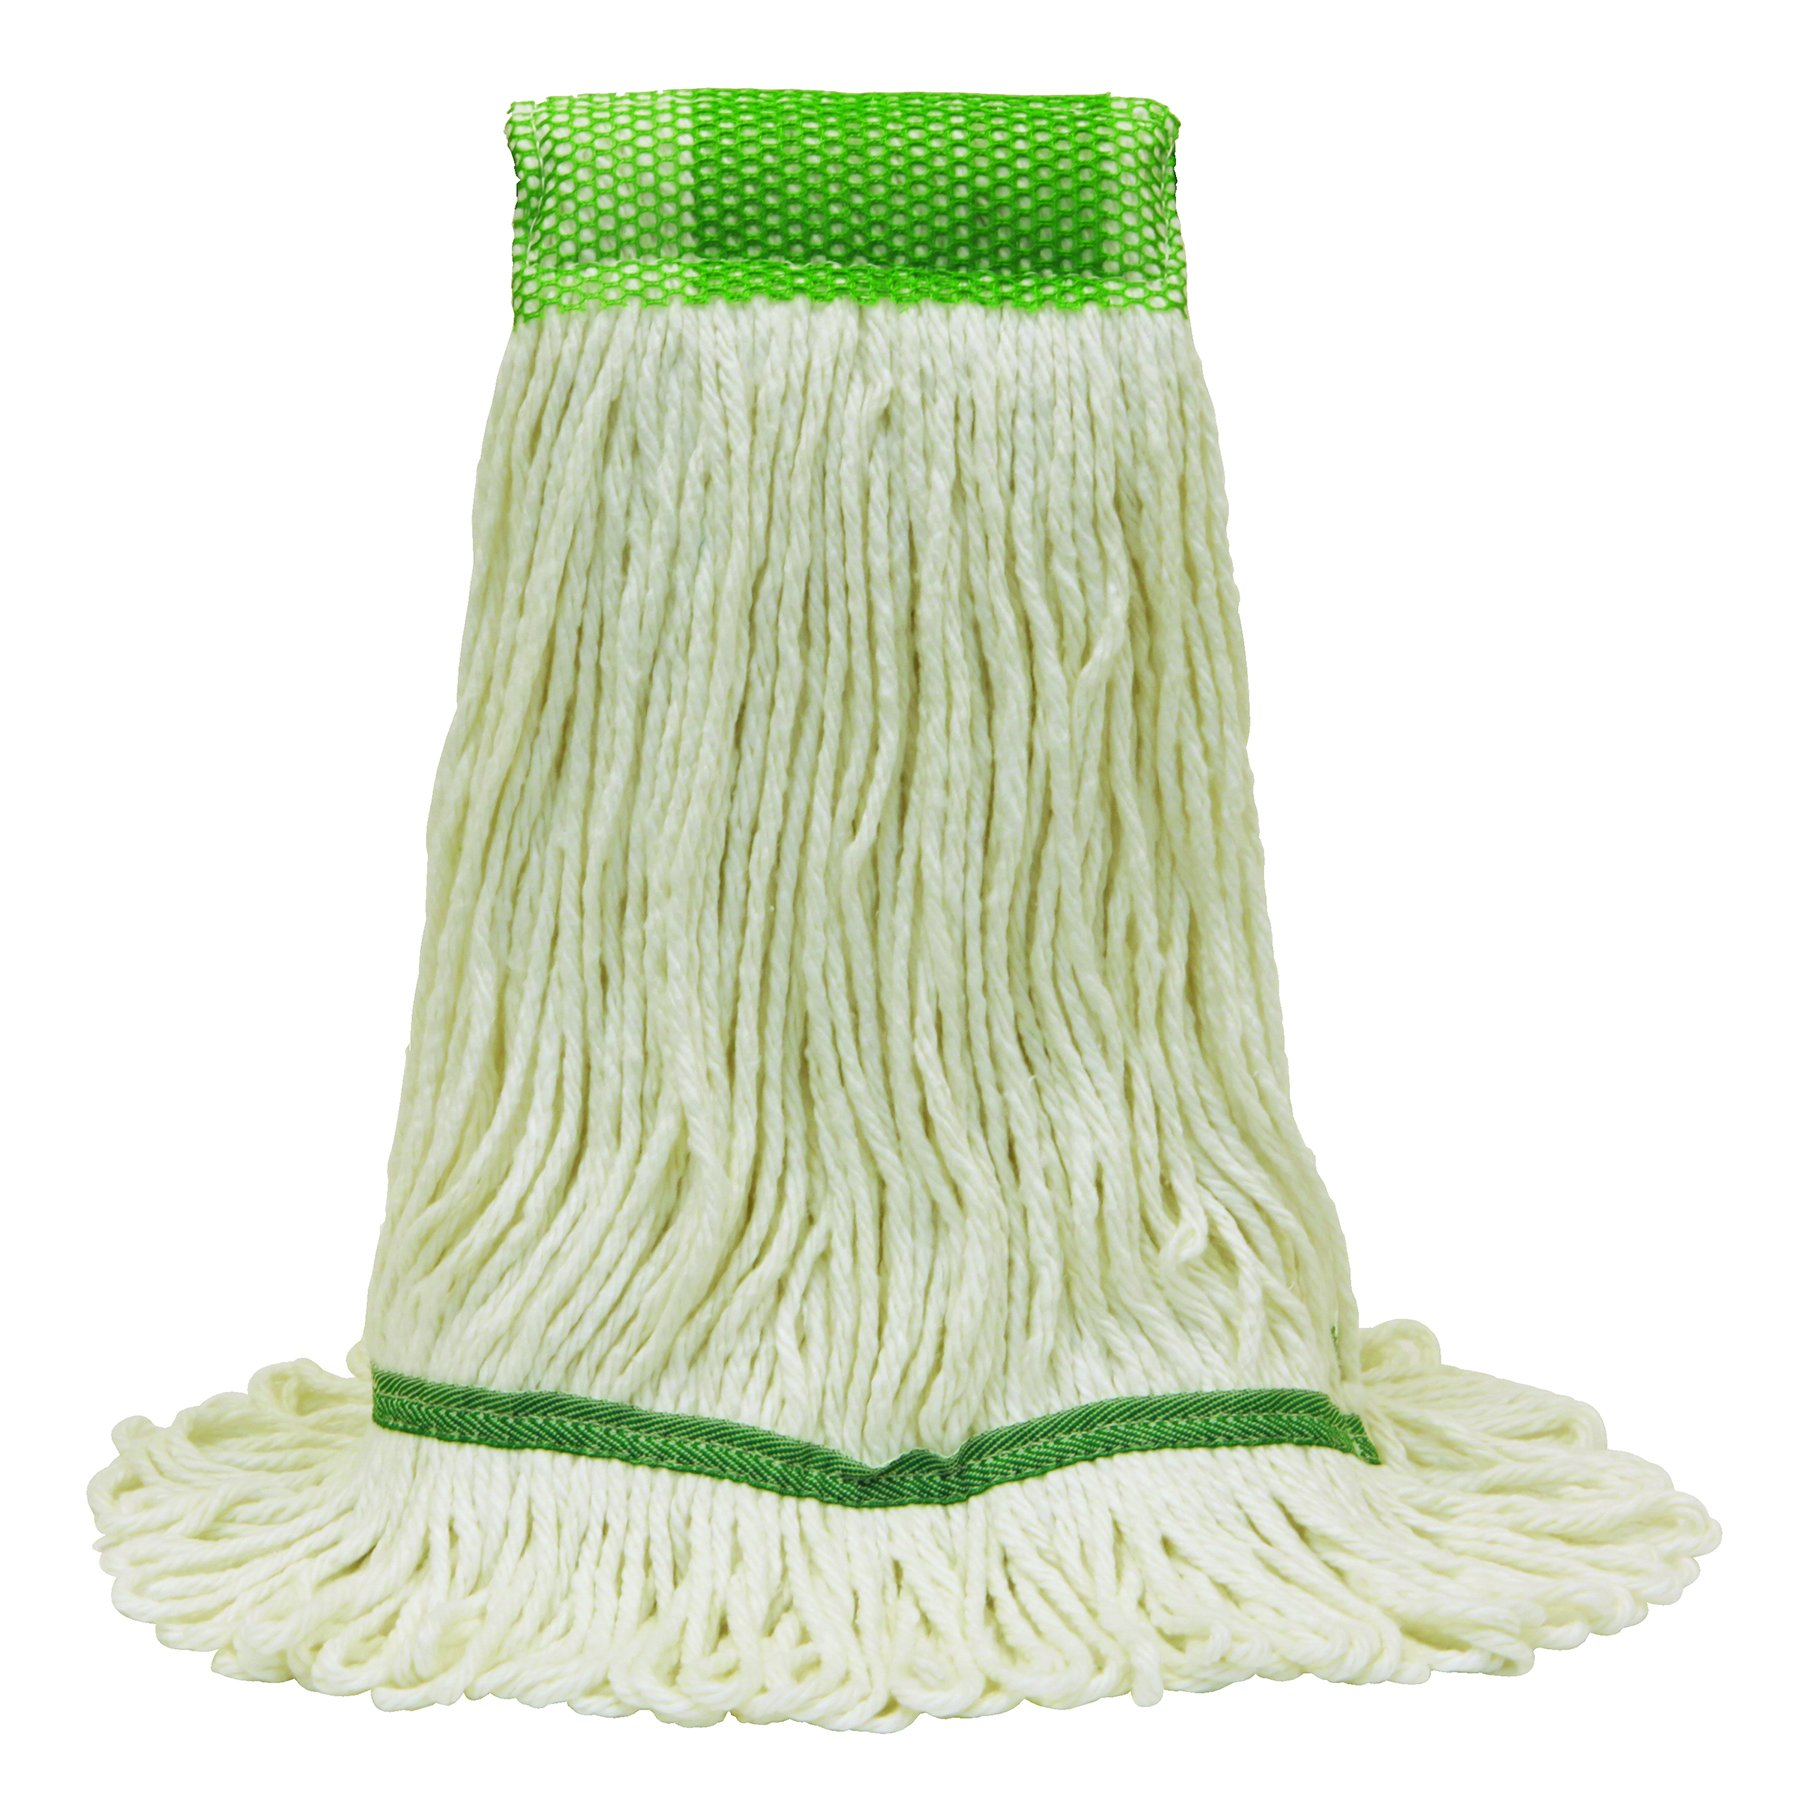 O'Cedar Commercial 97211 Healthi-Pro Anti-Microbial Mop, Small, White (Pack of 6) by O-Cedar Commercial (Image #1)